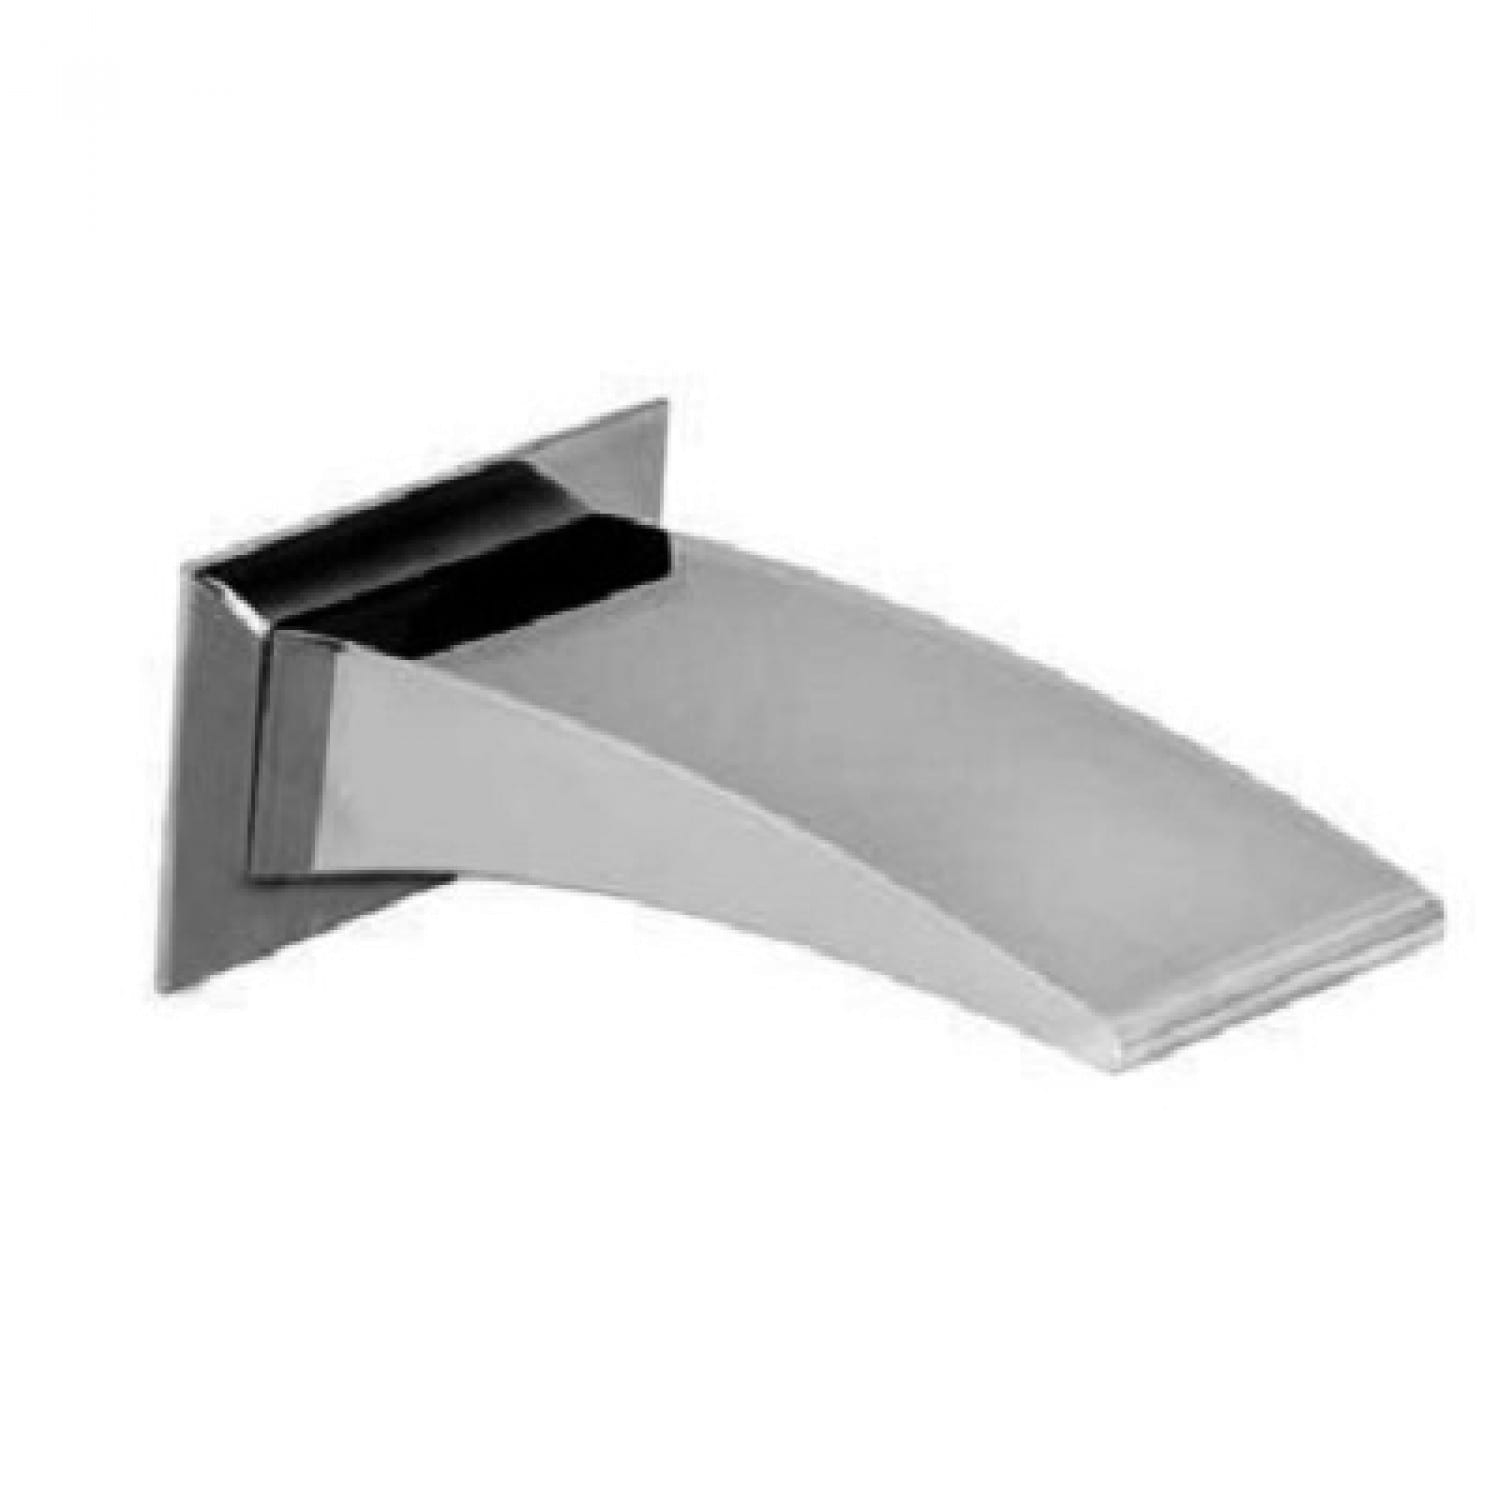 Waterfall Bath Spout-Curved Line